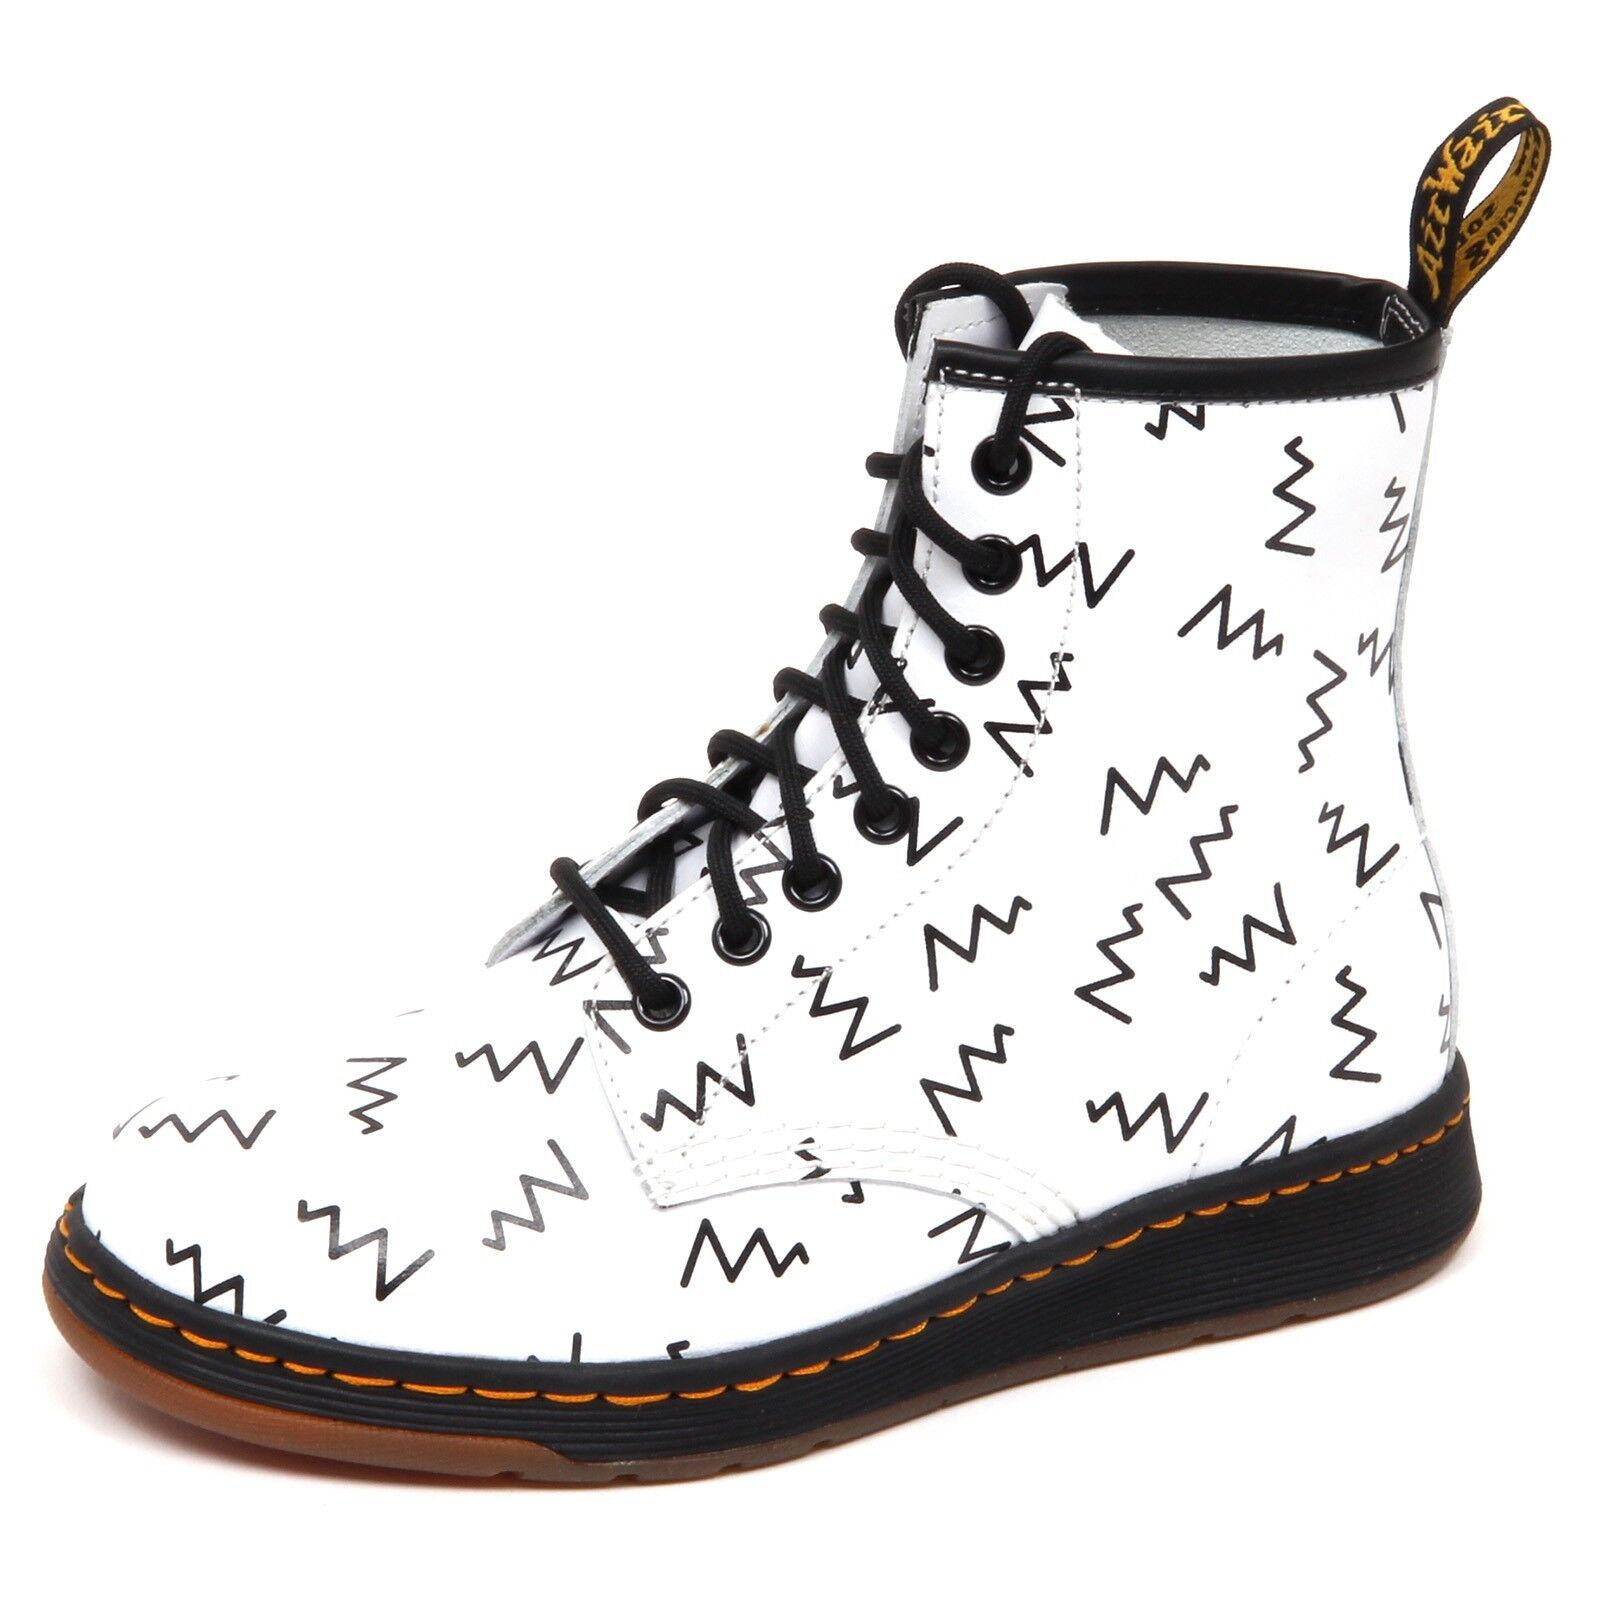 D7256 (without MARTENS box) anfibio donna DR. MARTENS (without NEWTON ZIG ZAG shoe boot woman a12196